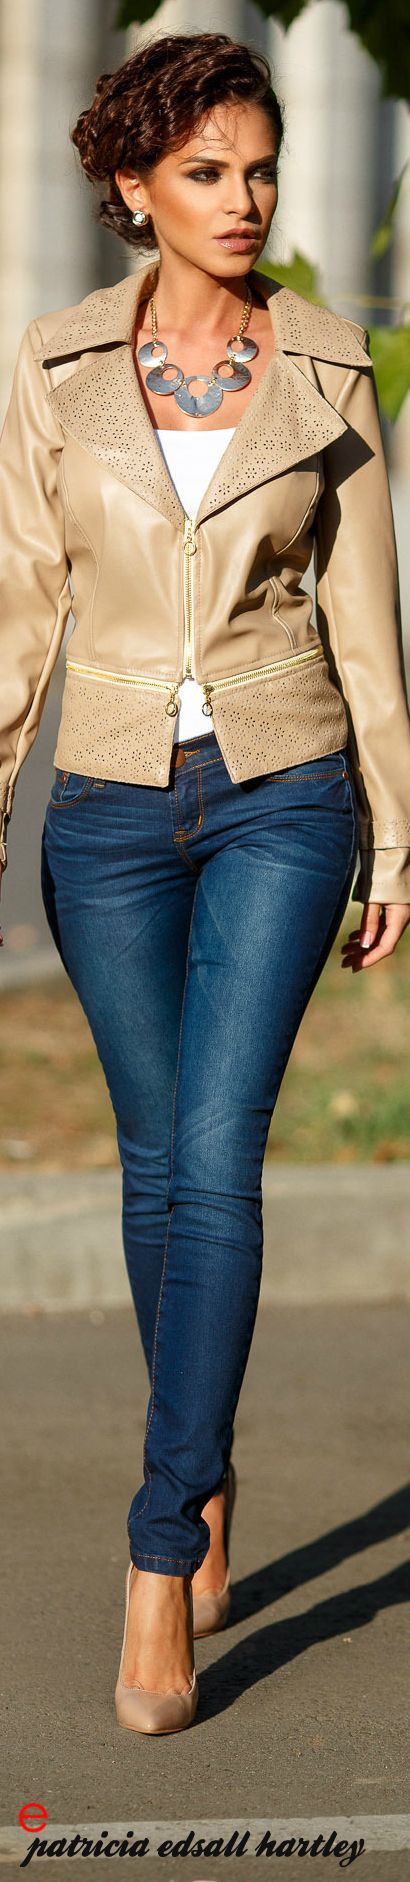 Tan Short Leather Jacket w zipper details ~ Atmosphere Fashion